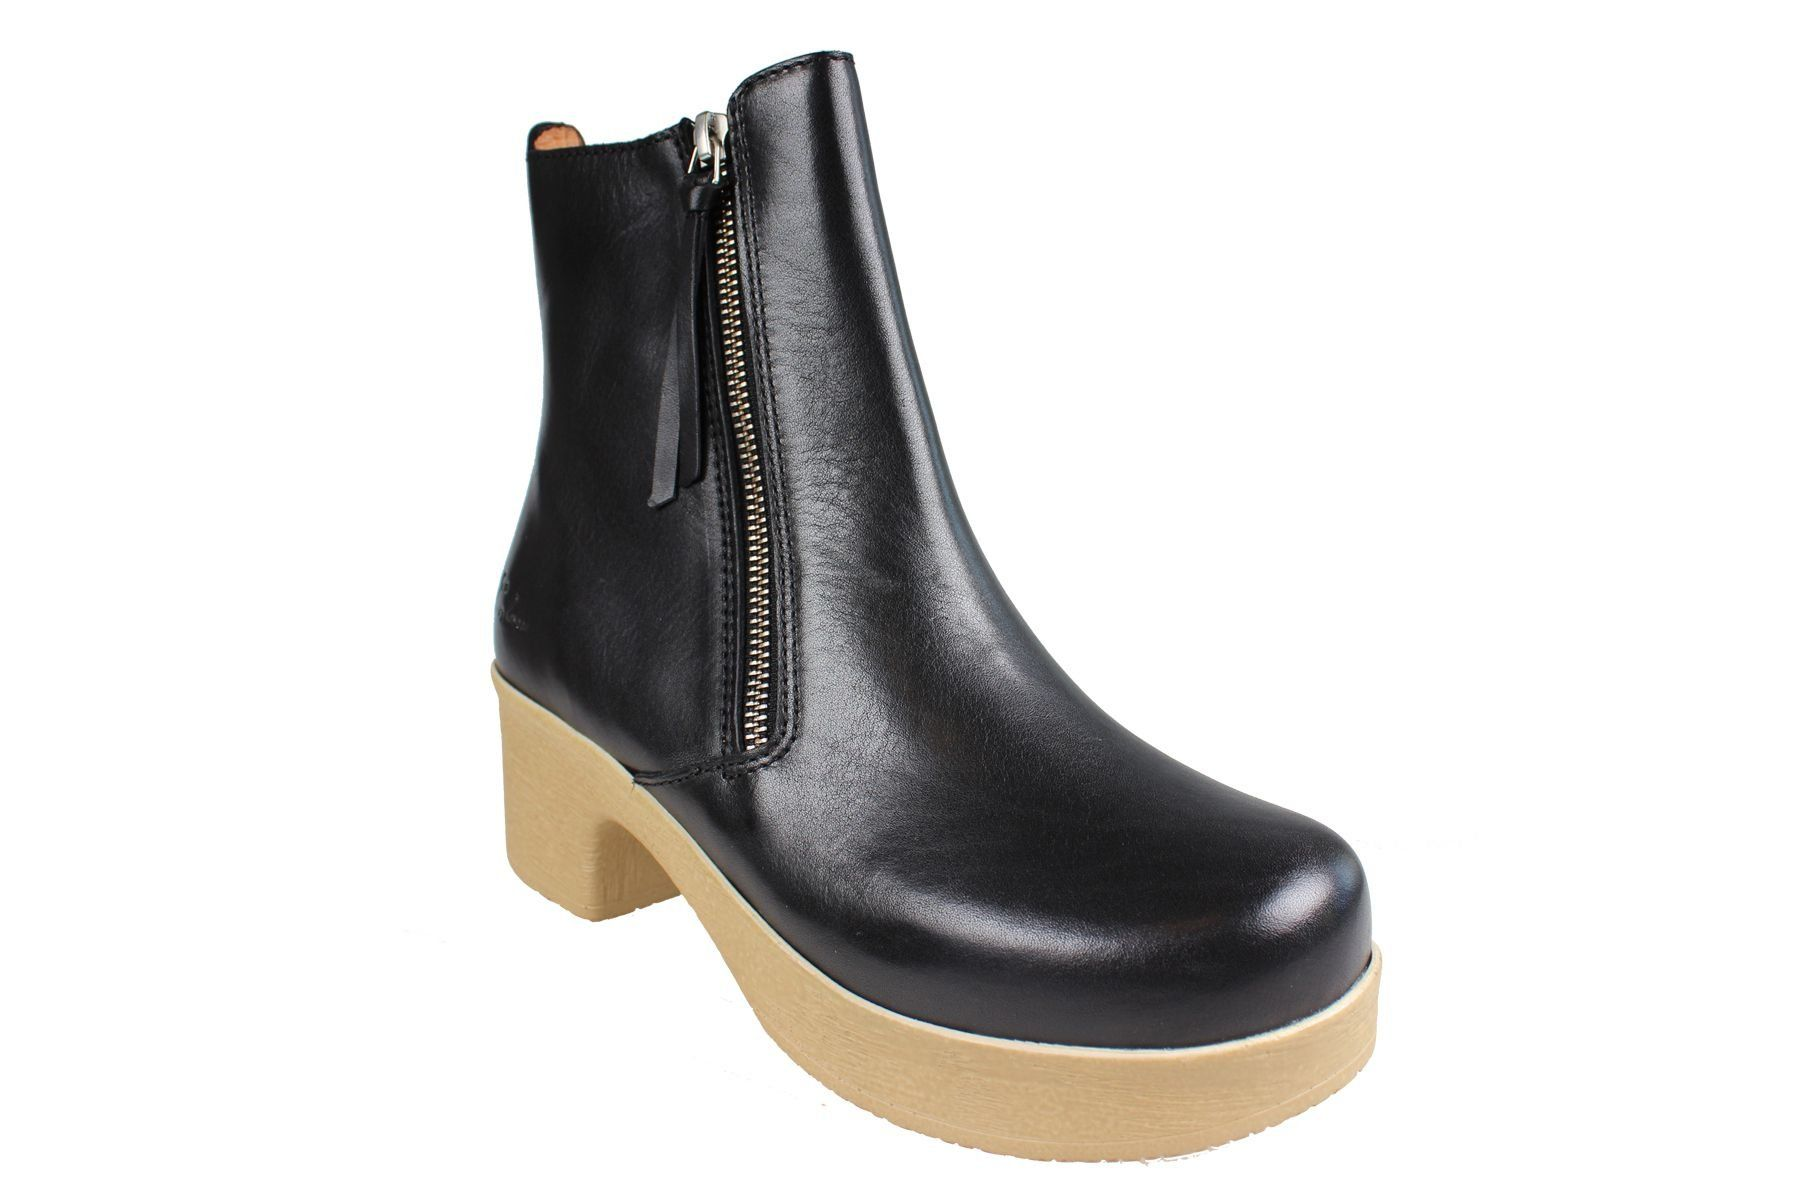 Calou Moa Boot in Black